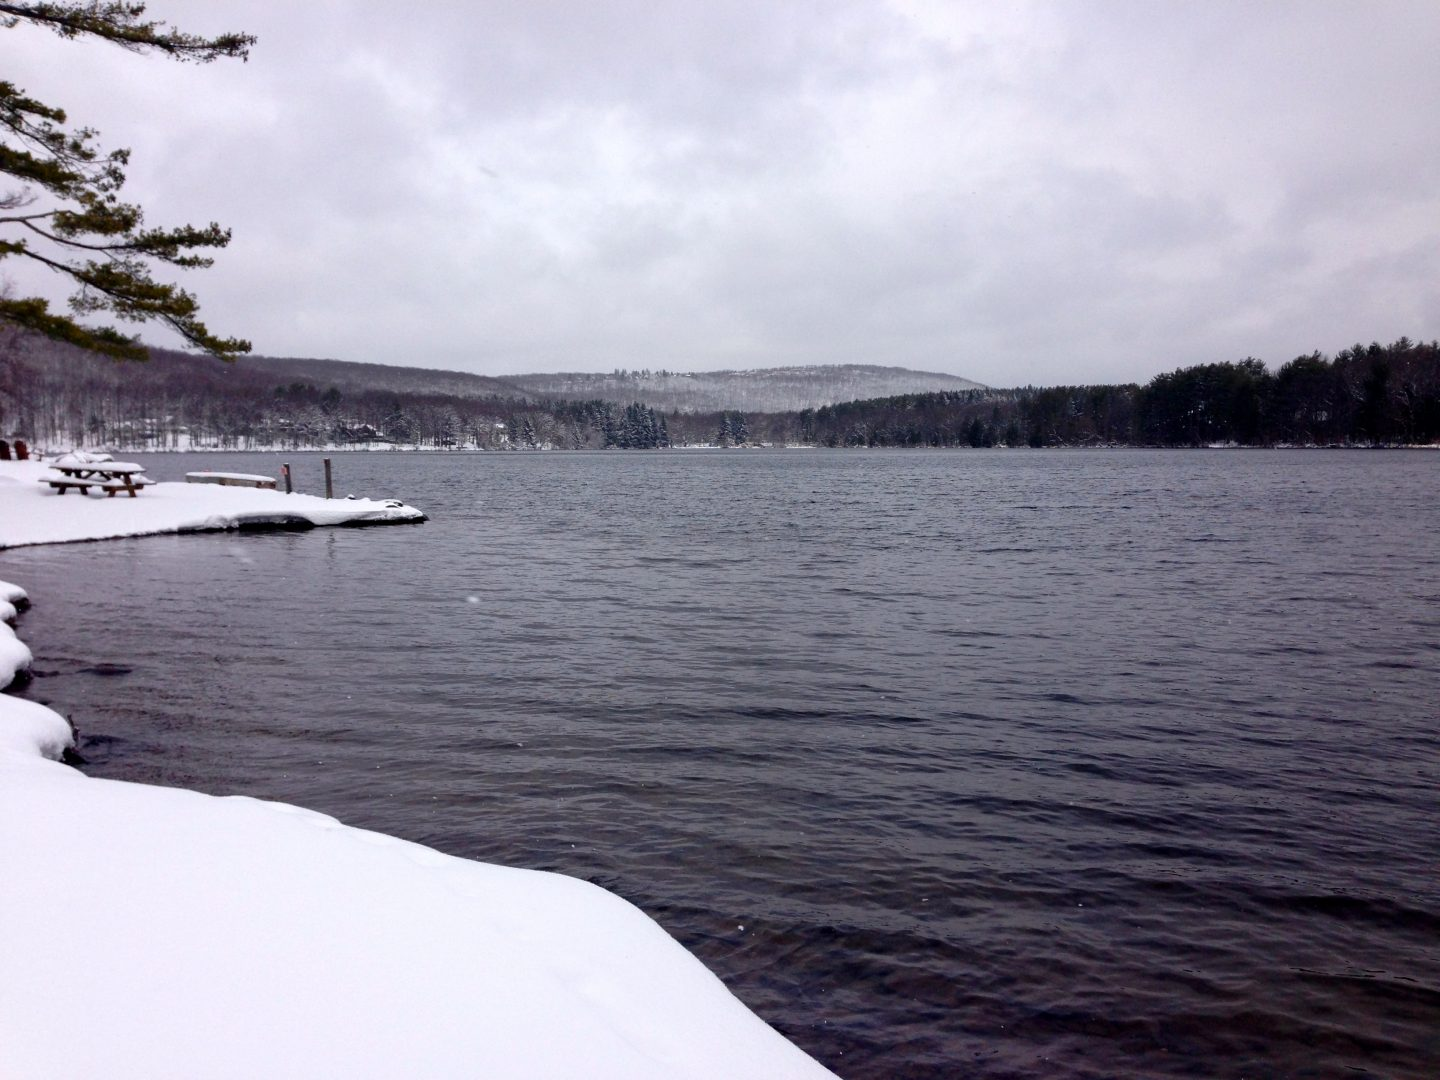 Taking a winter walk around the lake at Skytop Lodge in Penssyvania.